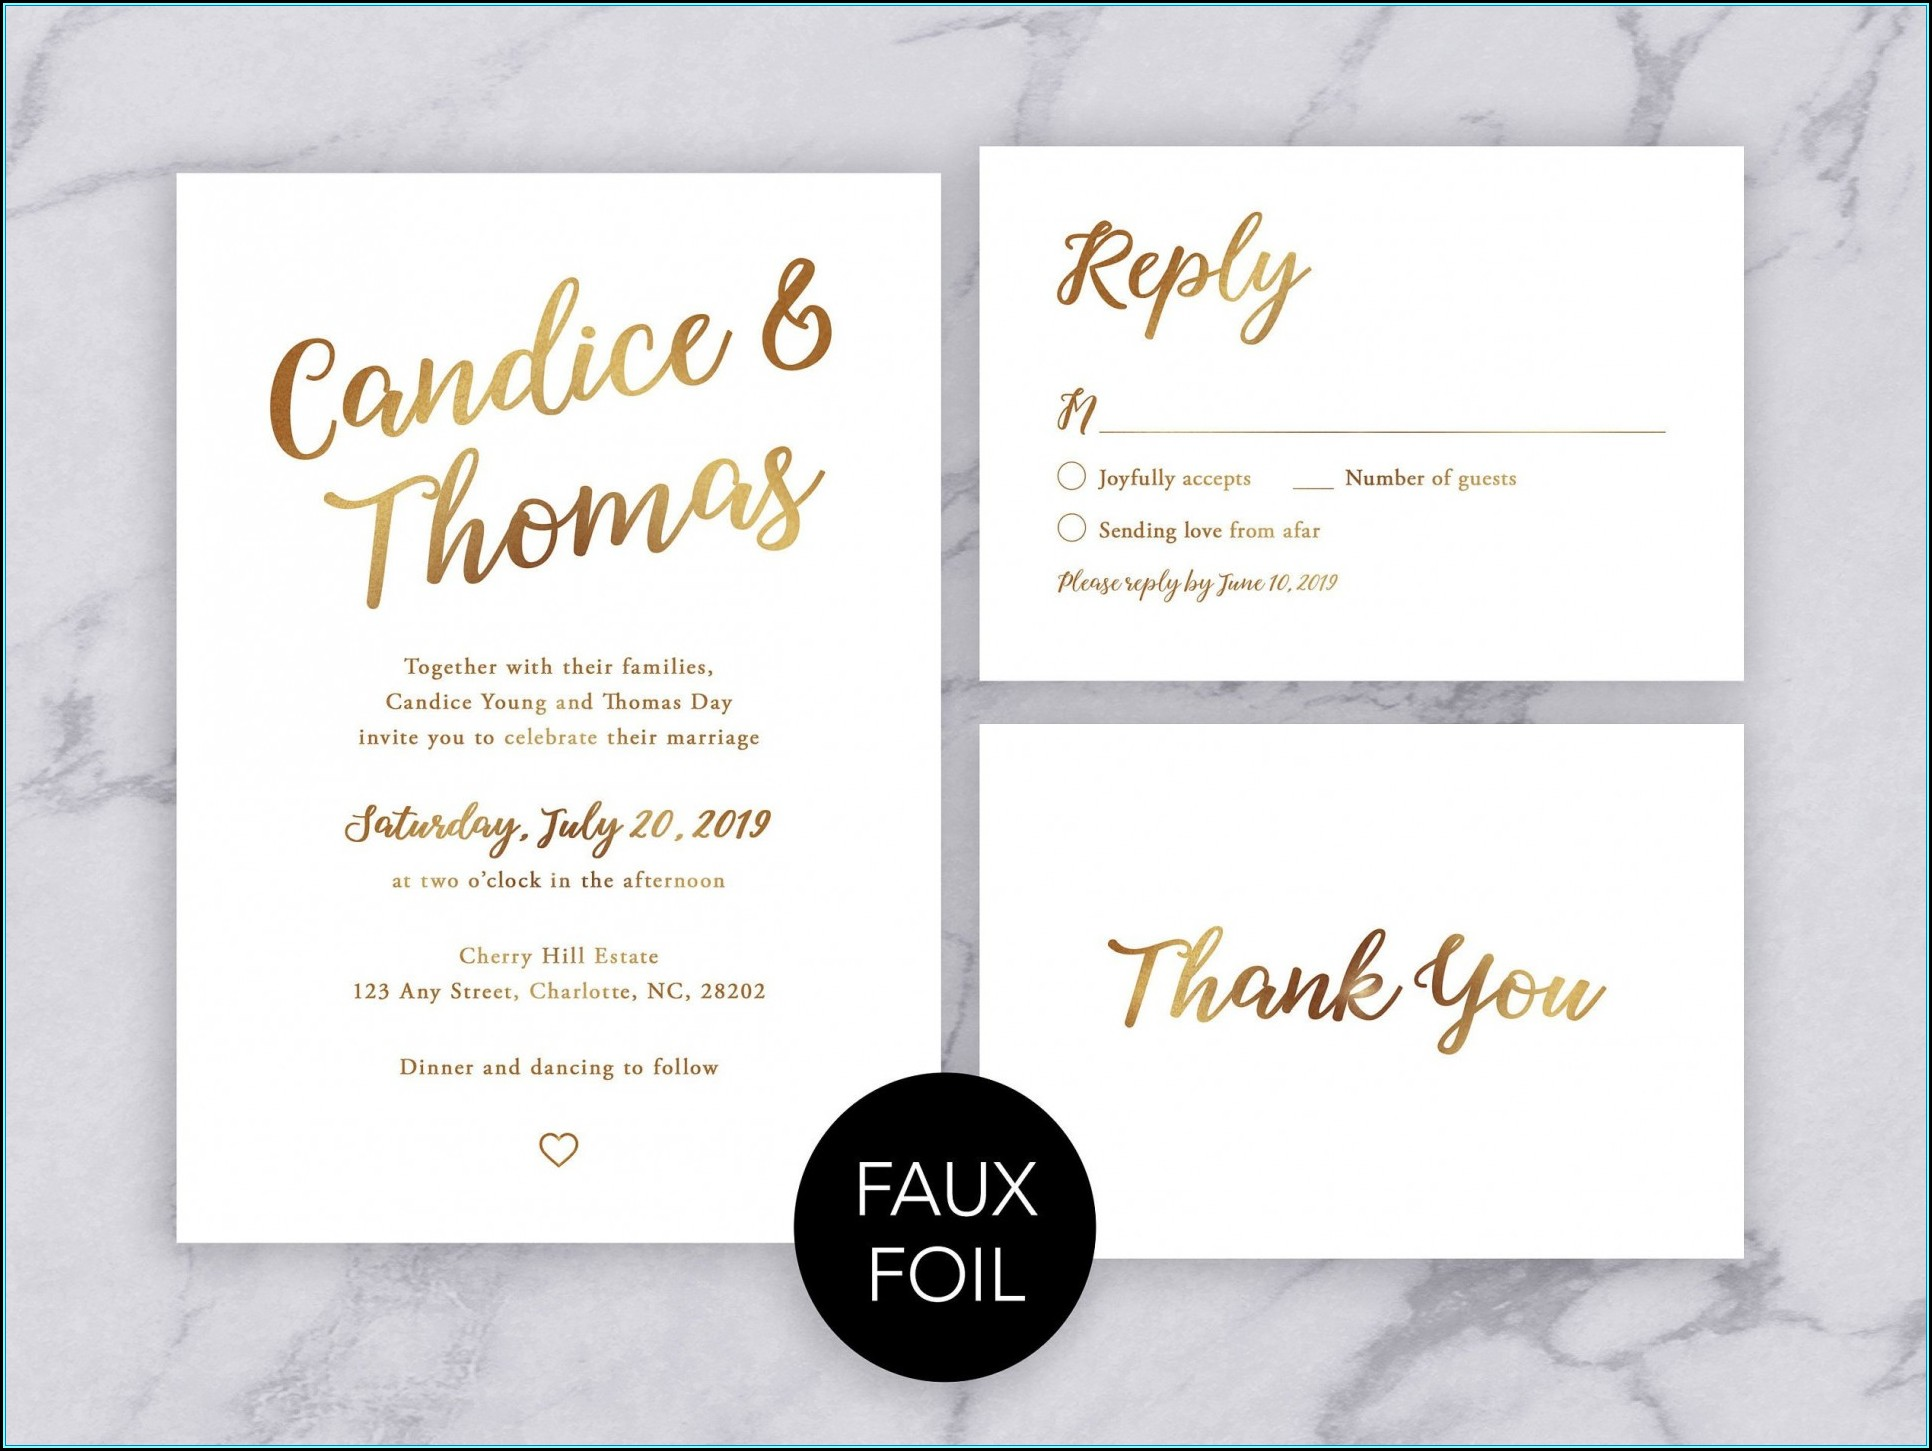 Wedding Invitation Format Download